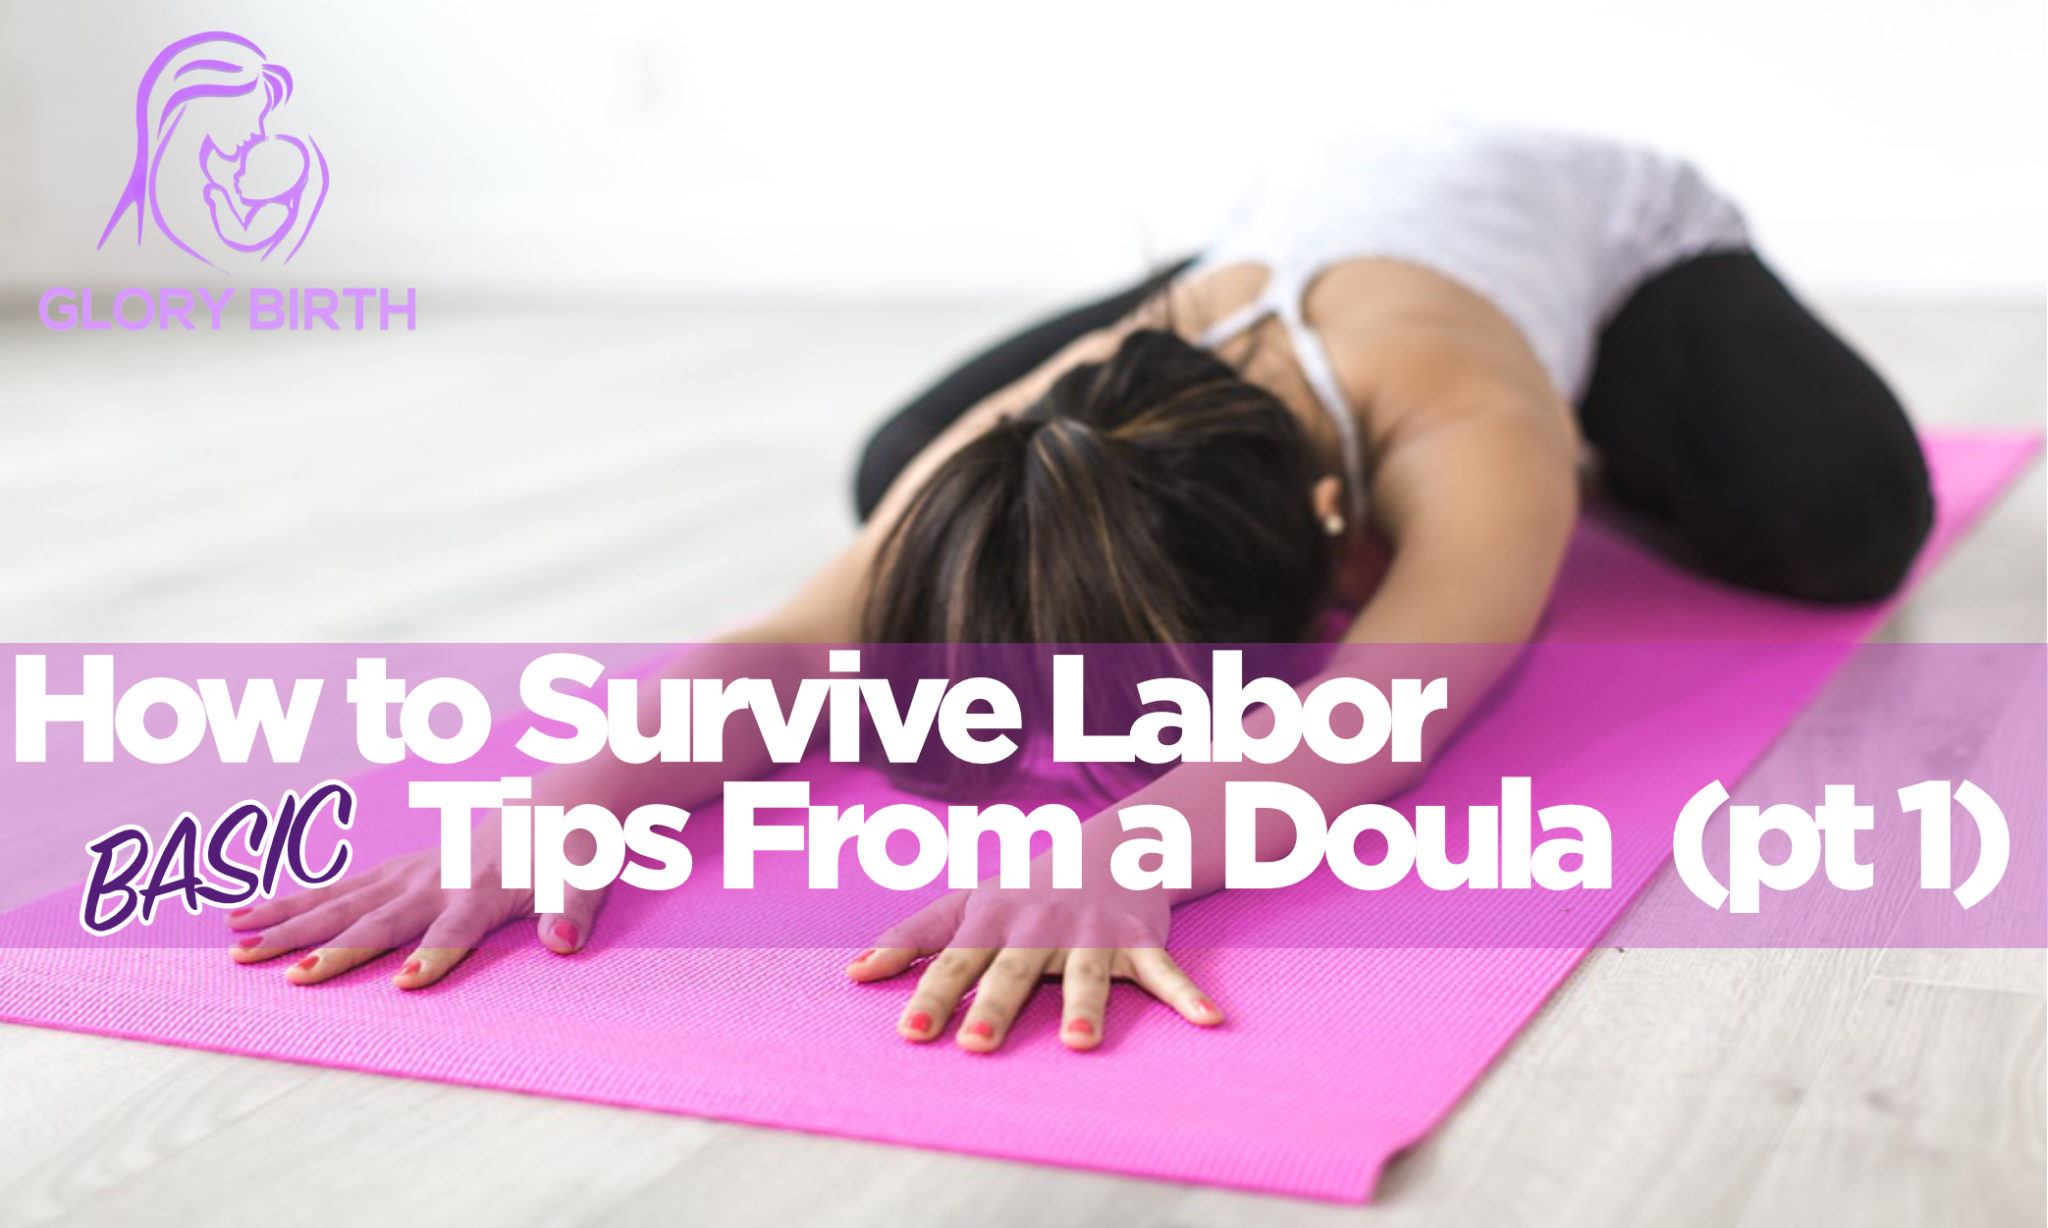 How to Survive Labor - Tips From a Doula (pt 1)